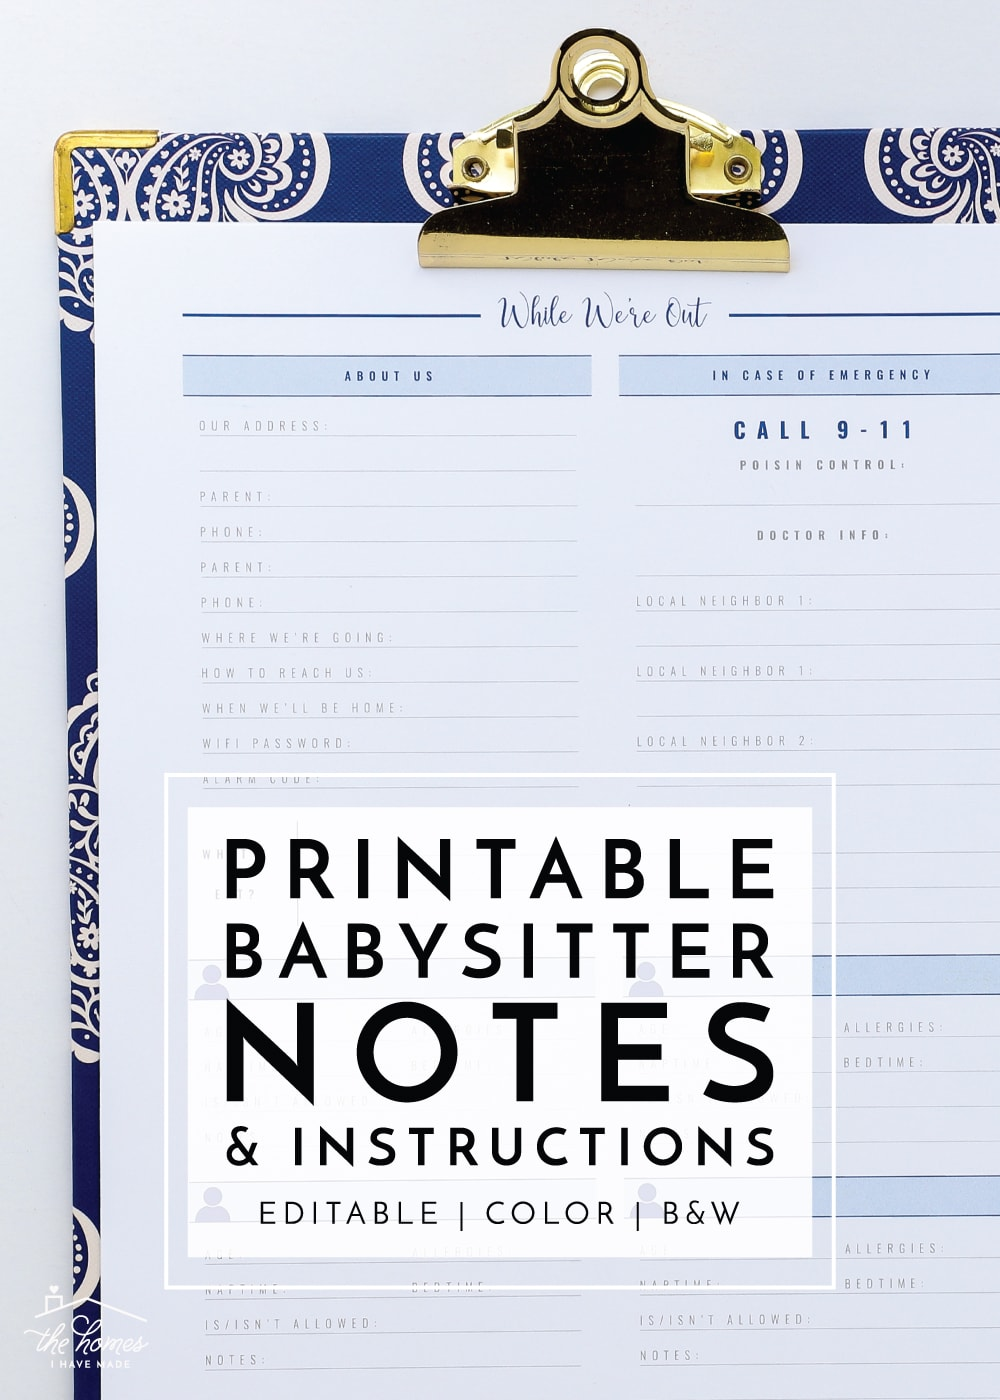 image about Printable Notes referred to as Contemporary towards The Small business Toolbox: Printable Babysitter Notes